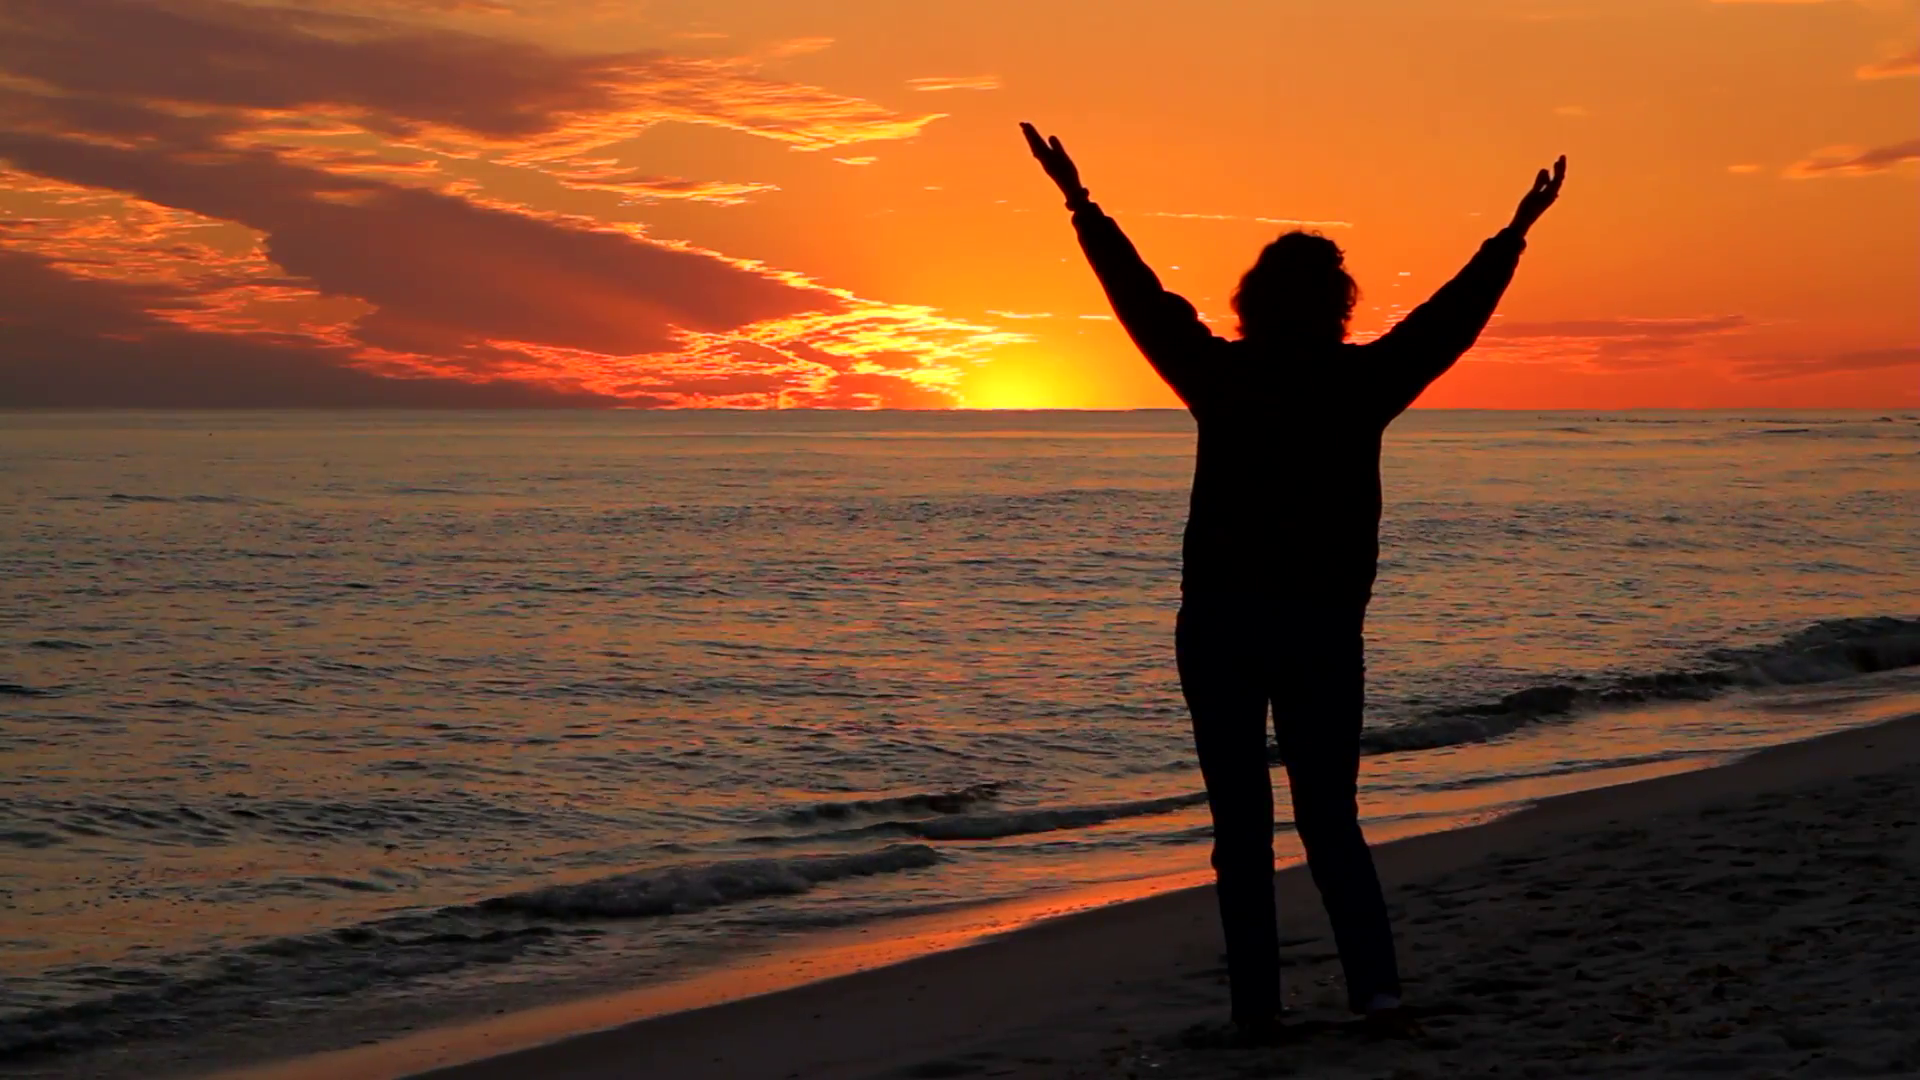 Image of a woman with hands raised at sunset in front of the ocean